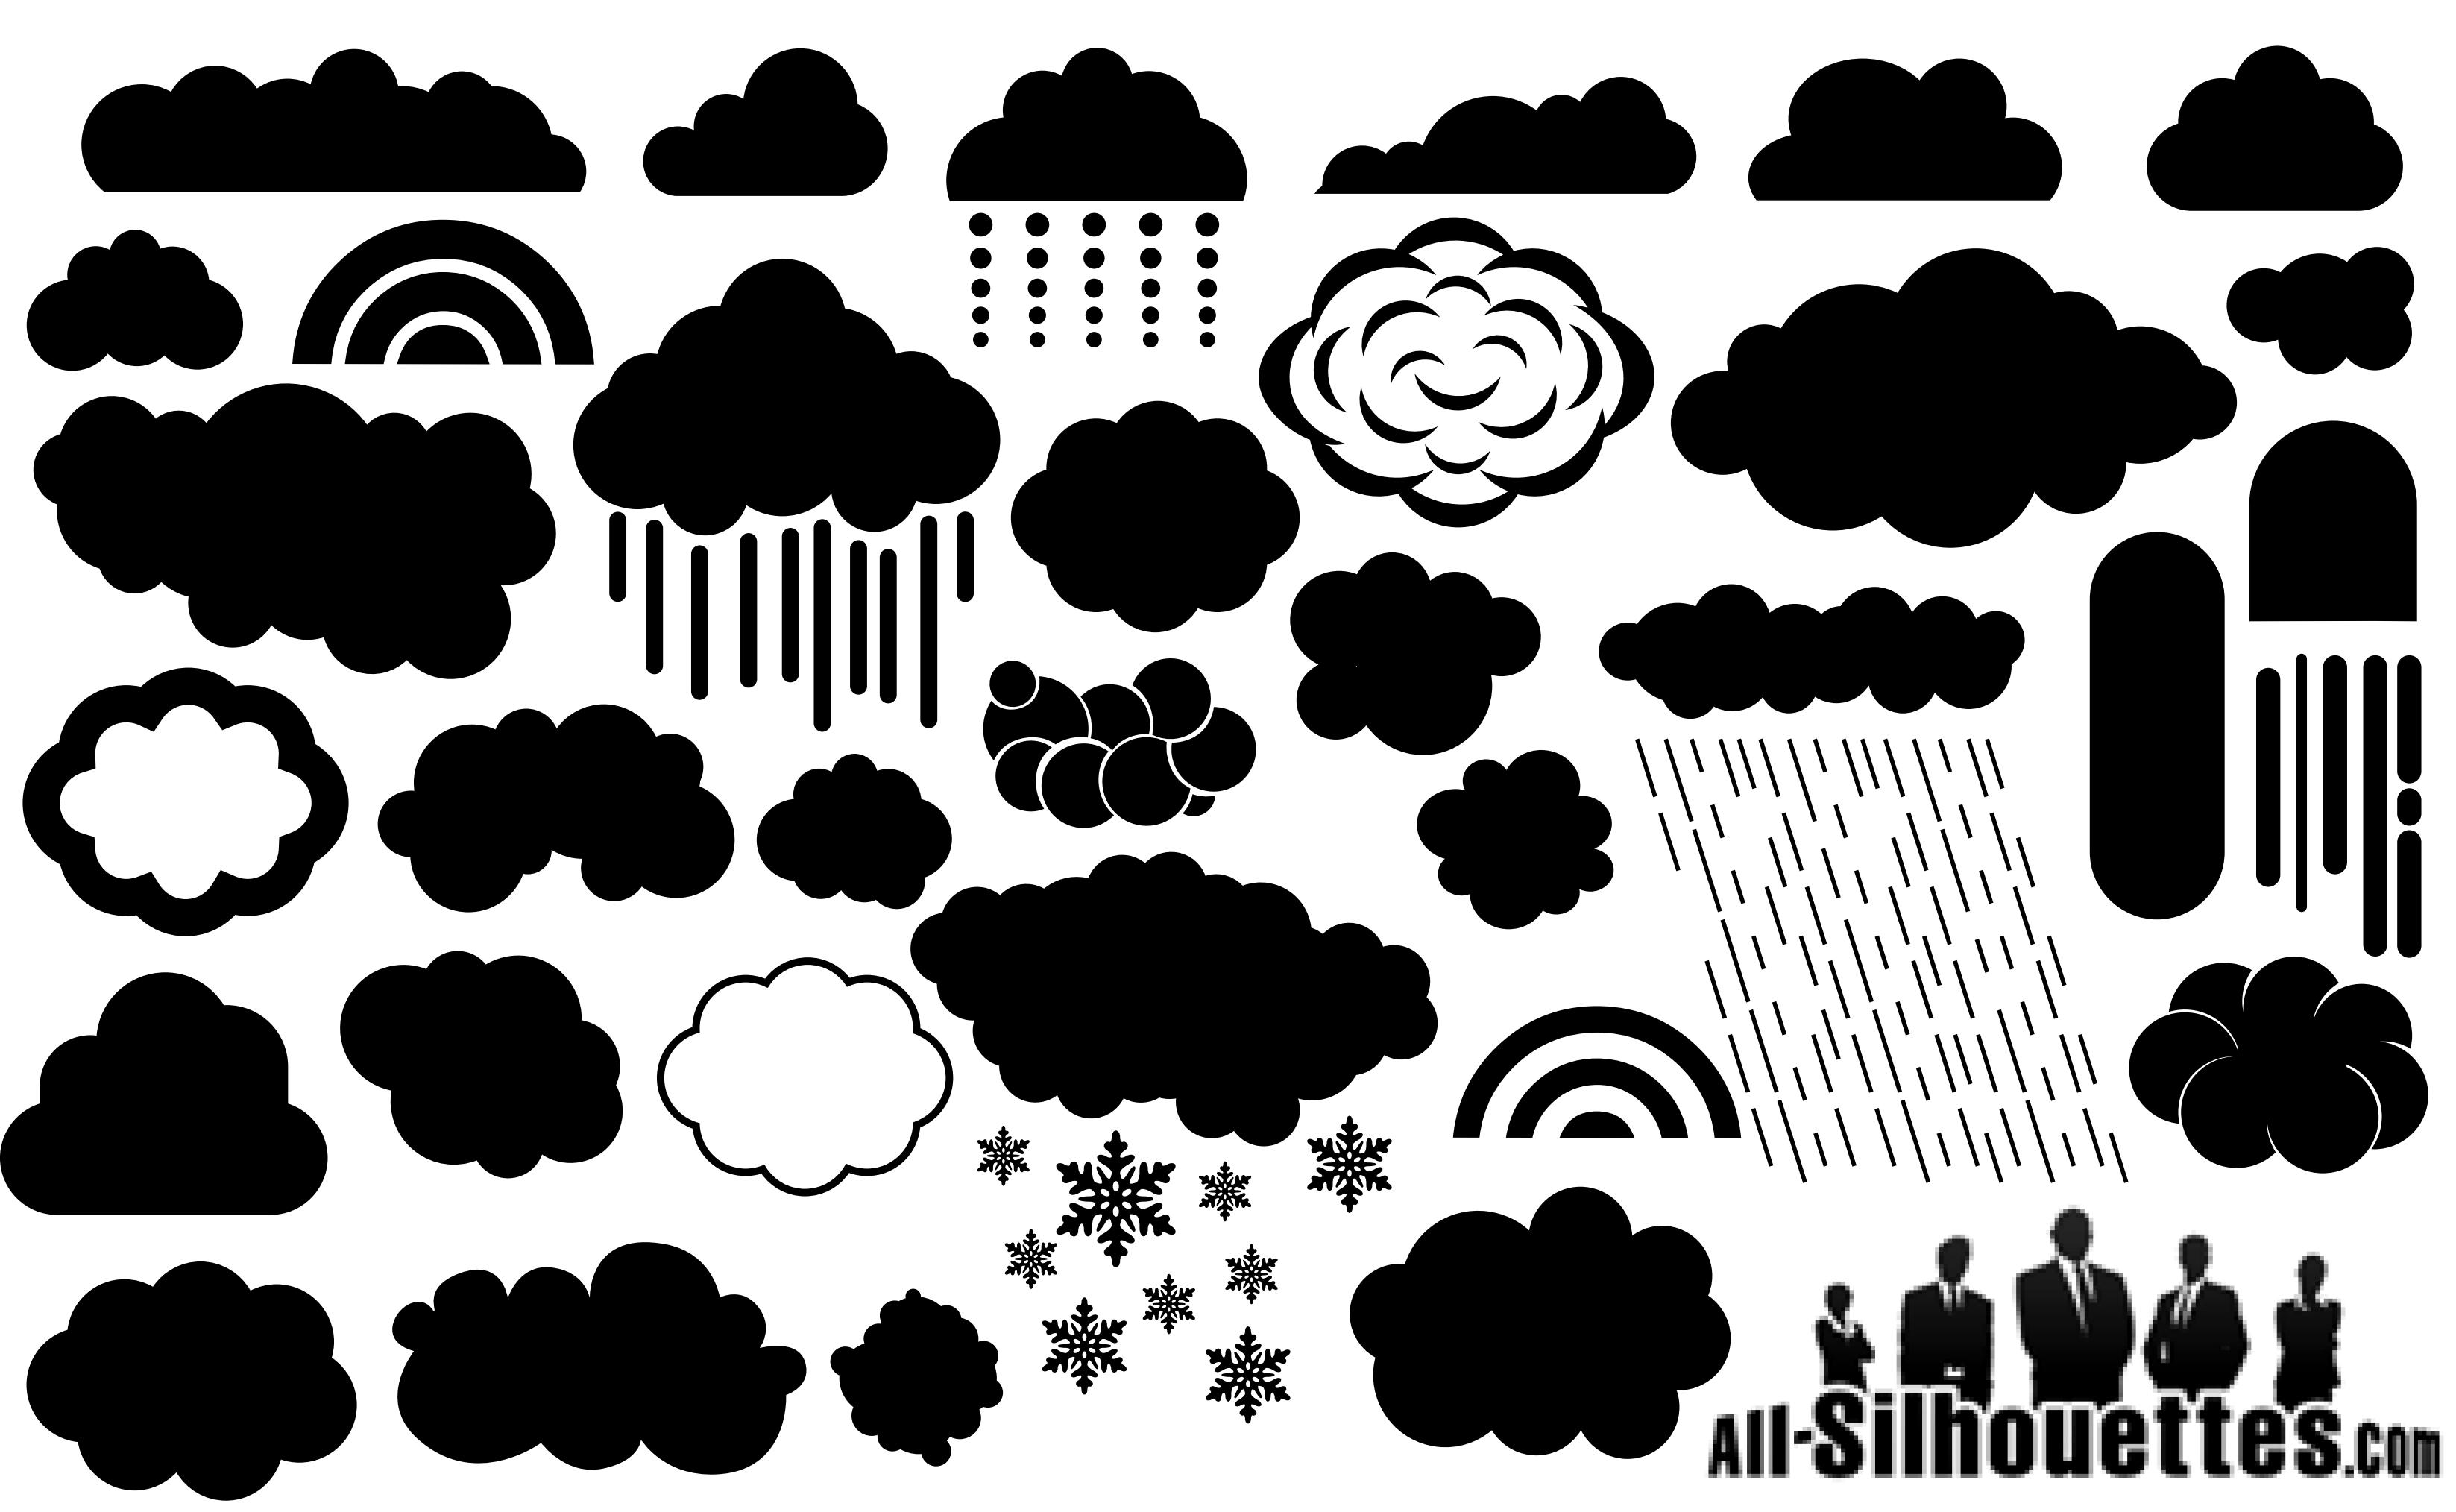 Cloud Silhouette Vector EPS Free Download, Logo, Icons, Brand.